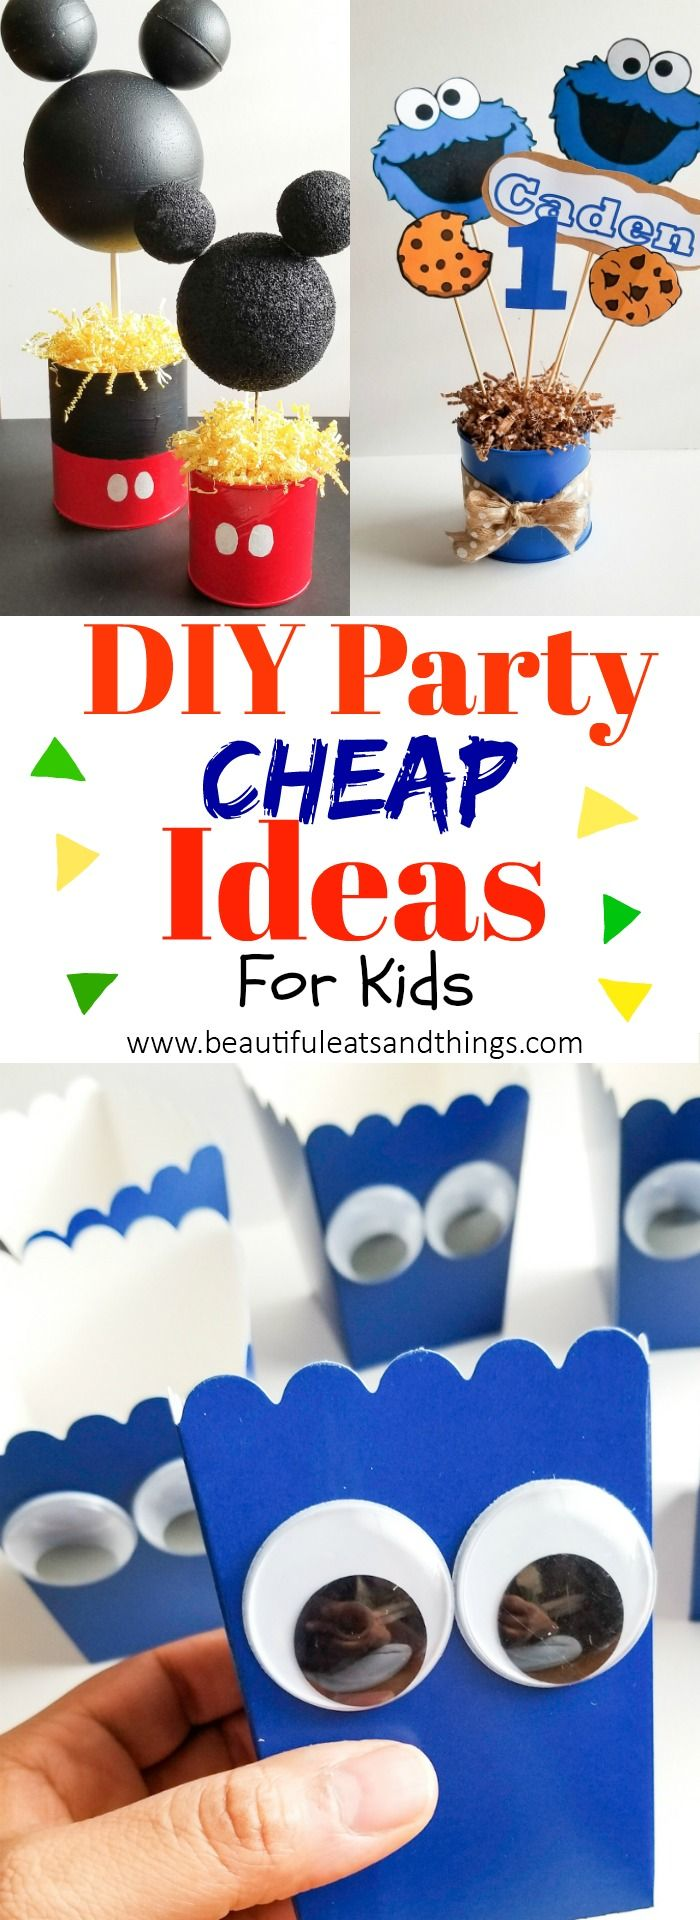 Plan the ULTIMATE kid's party on a budget! Cheap and easy diy party ideas your kids will love!! diy party | diy kids party | mickey mouse party | birthday party | cookie monster party | cheap party ideas | diy mickey mouse birthday party | diy cookie monster birthday party | first birthday party